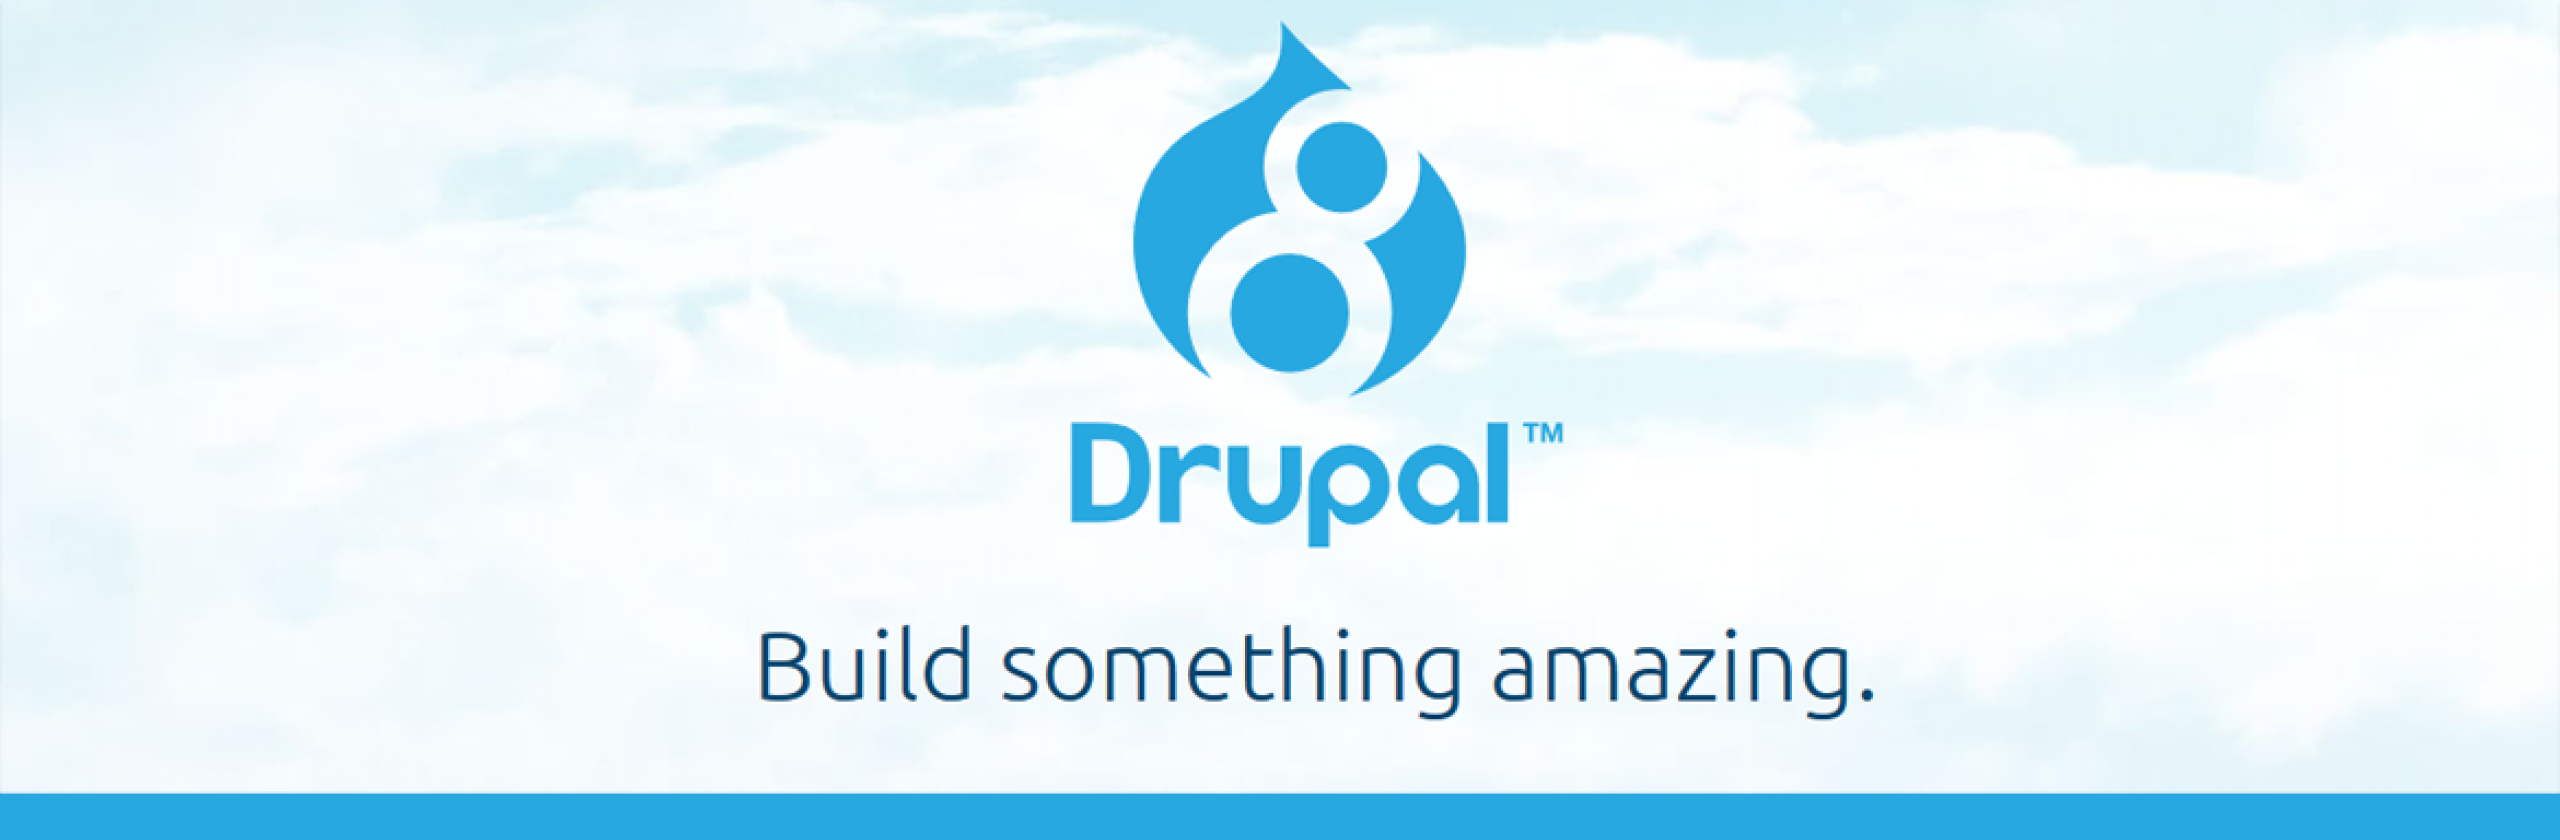 Drupal 8 - Build something amazing